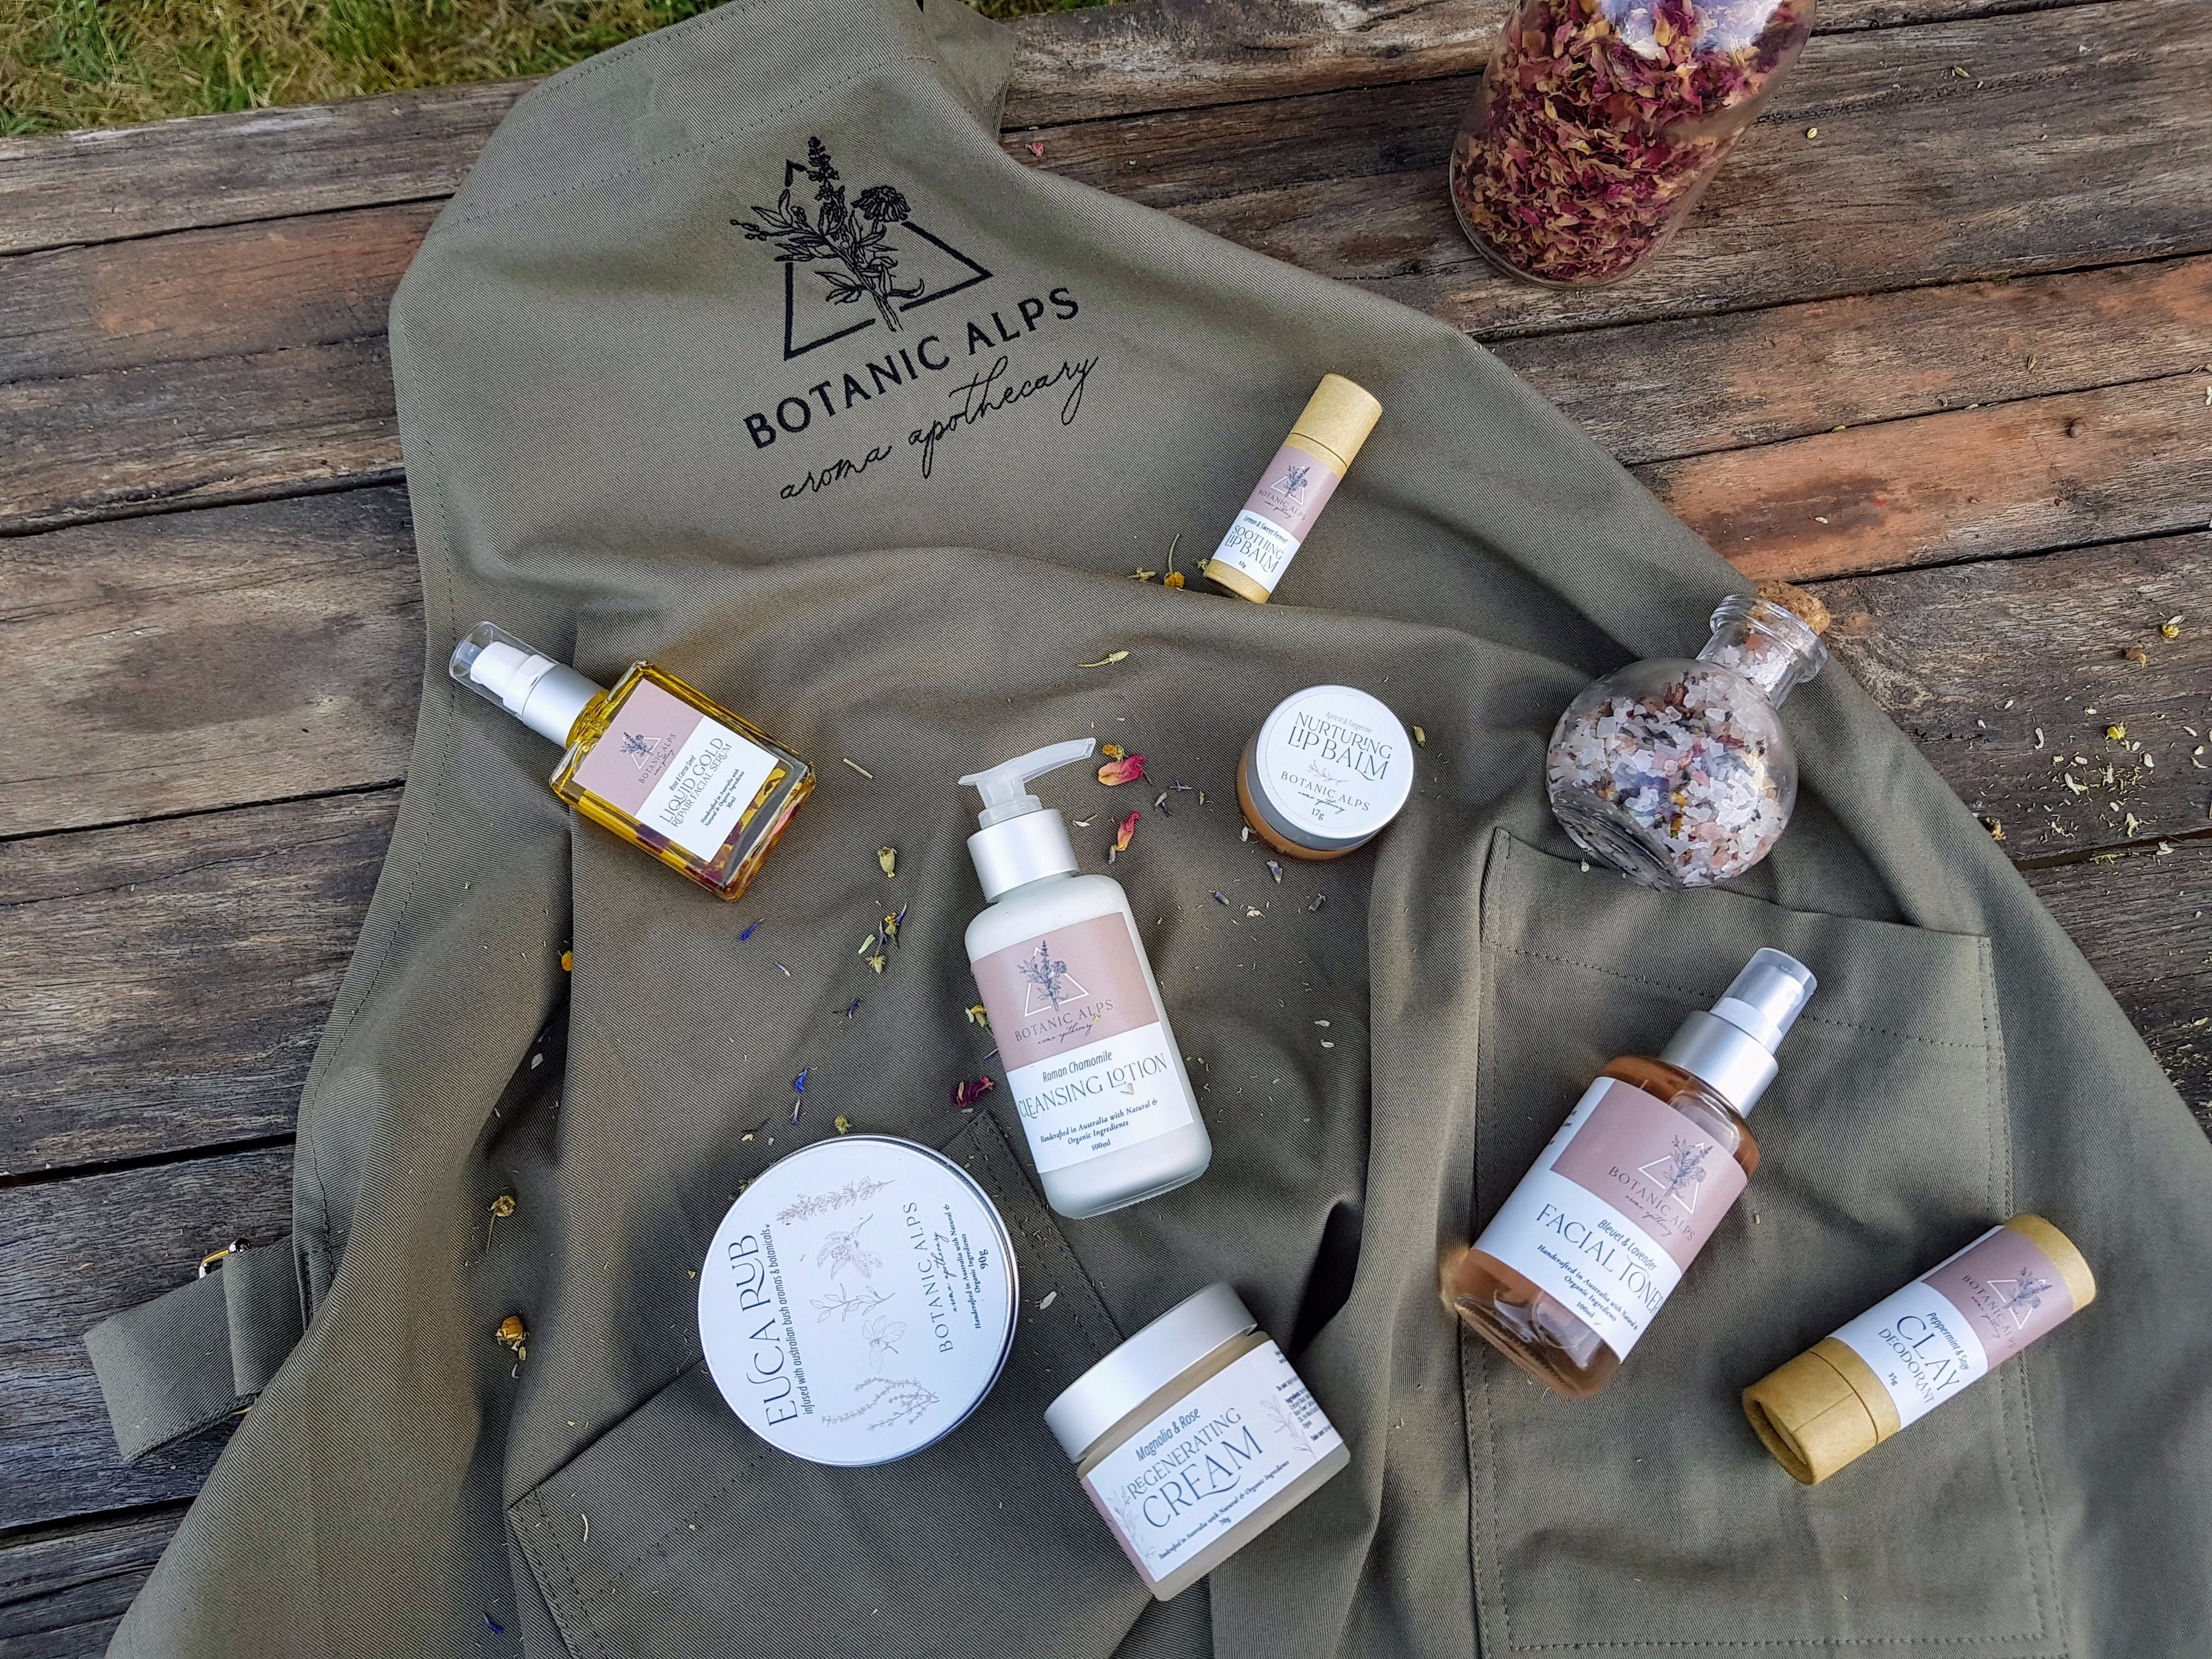 Botanic Alps Aroma Apothecary - Accommodation VIC